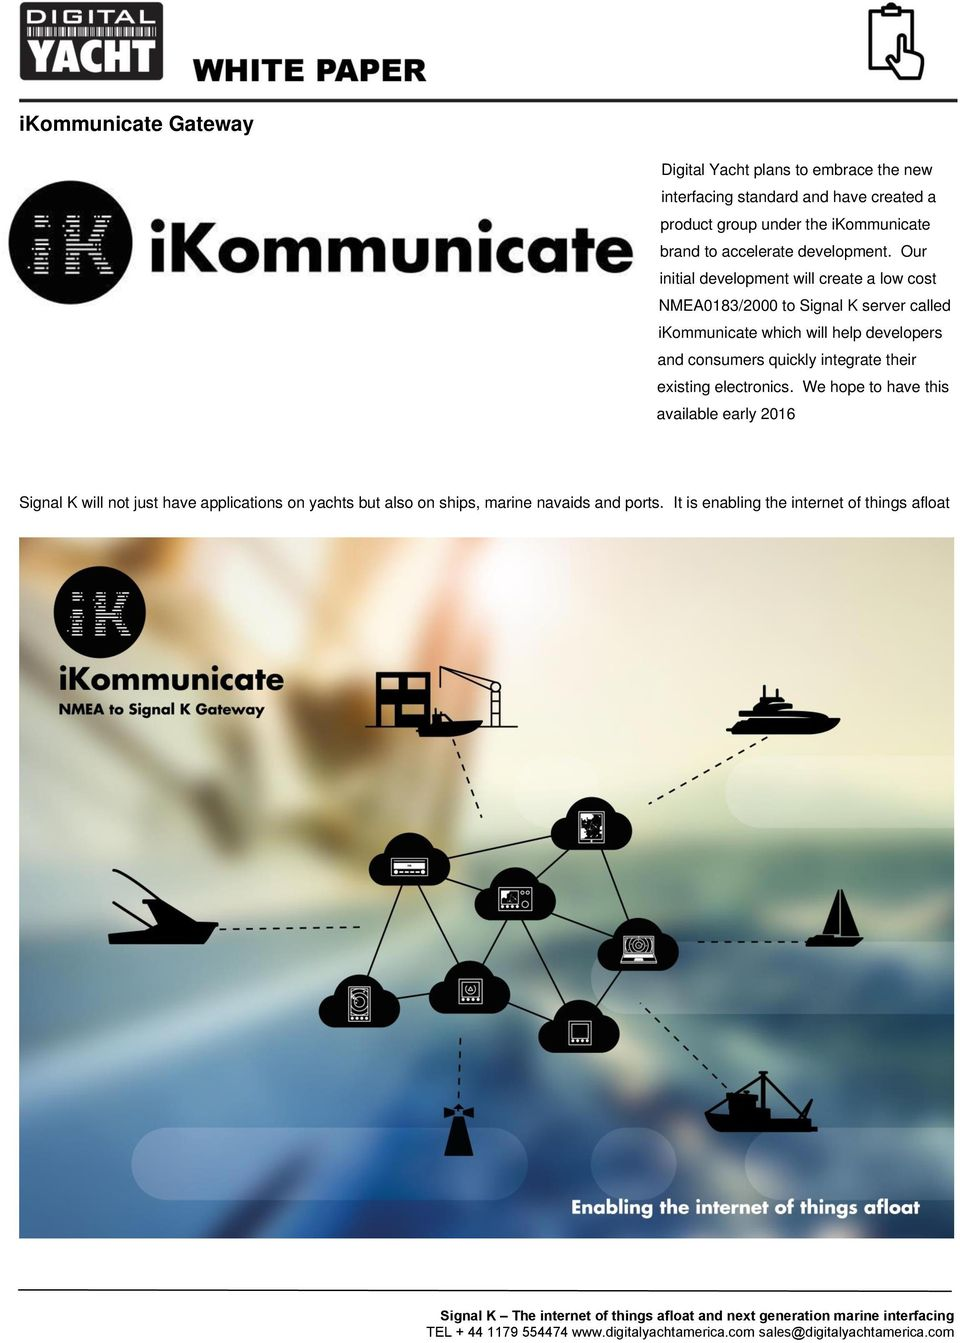 Our initial development will create a low cost NMEA0183/2000 to Signal K server called ikommunicate which will help developers and